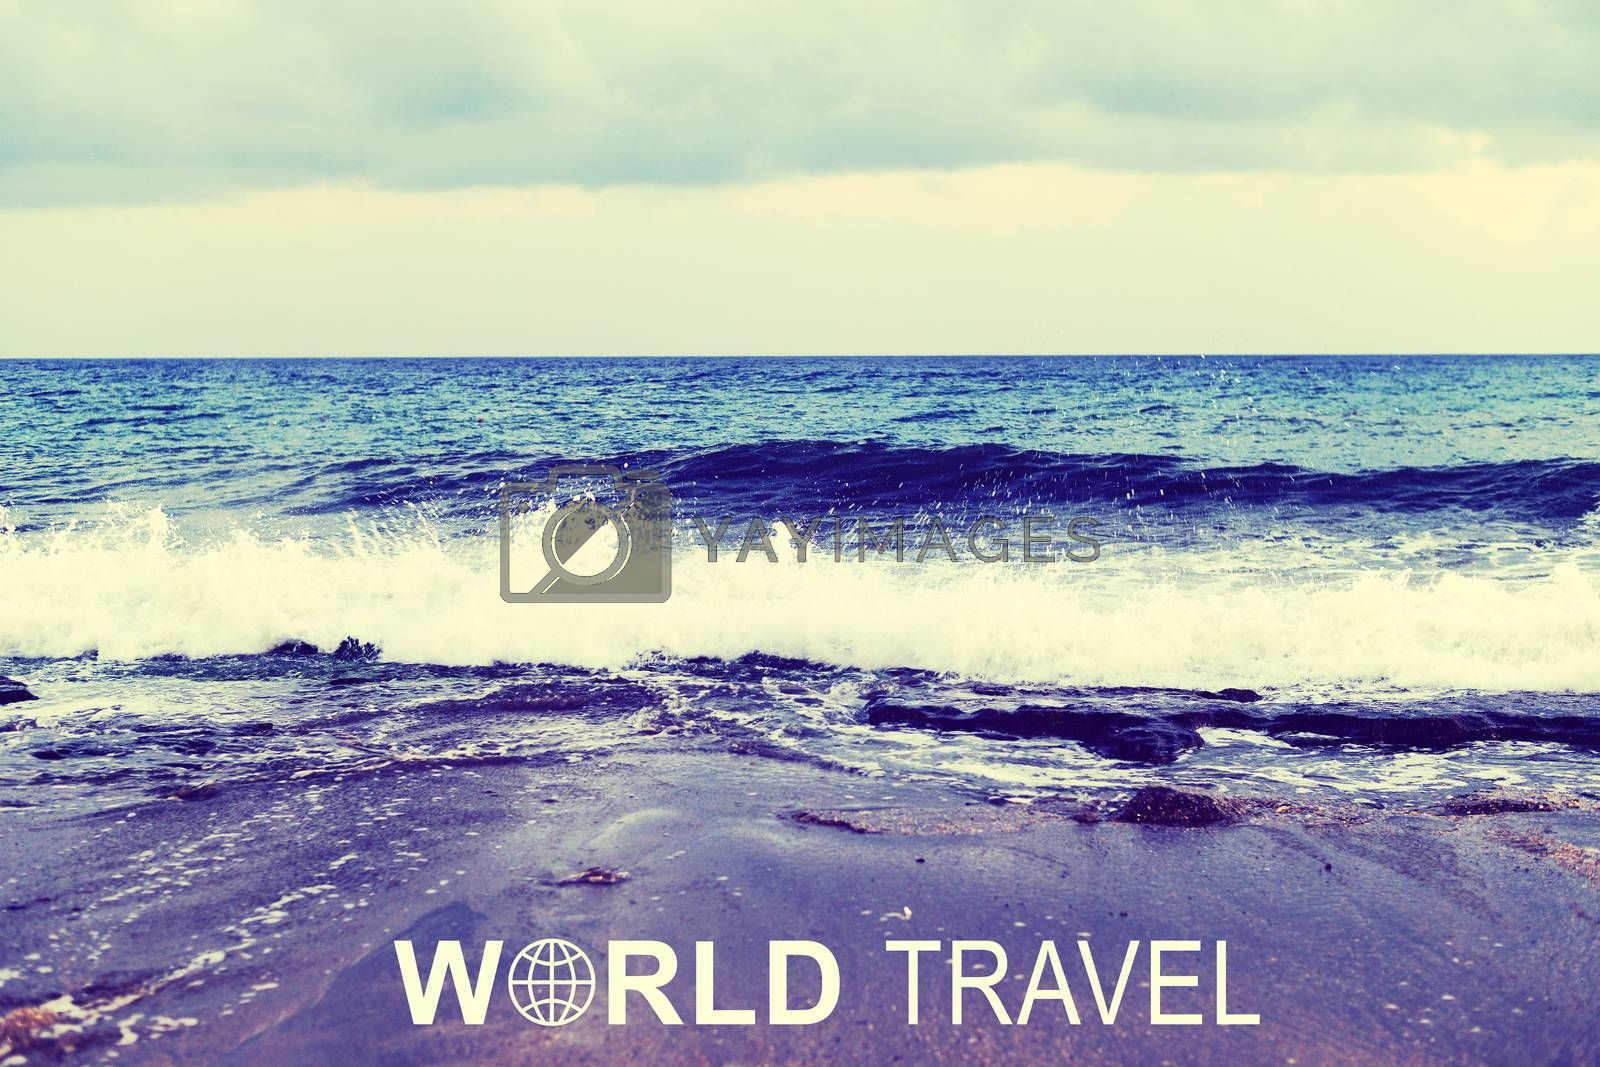 Sea wave rolling ashore. Inscription World Travel and related symbol